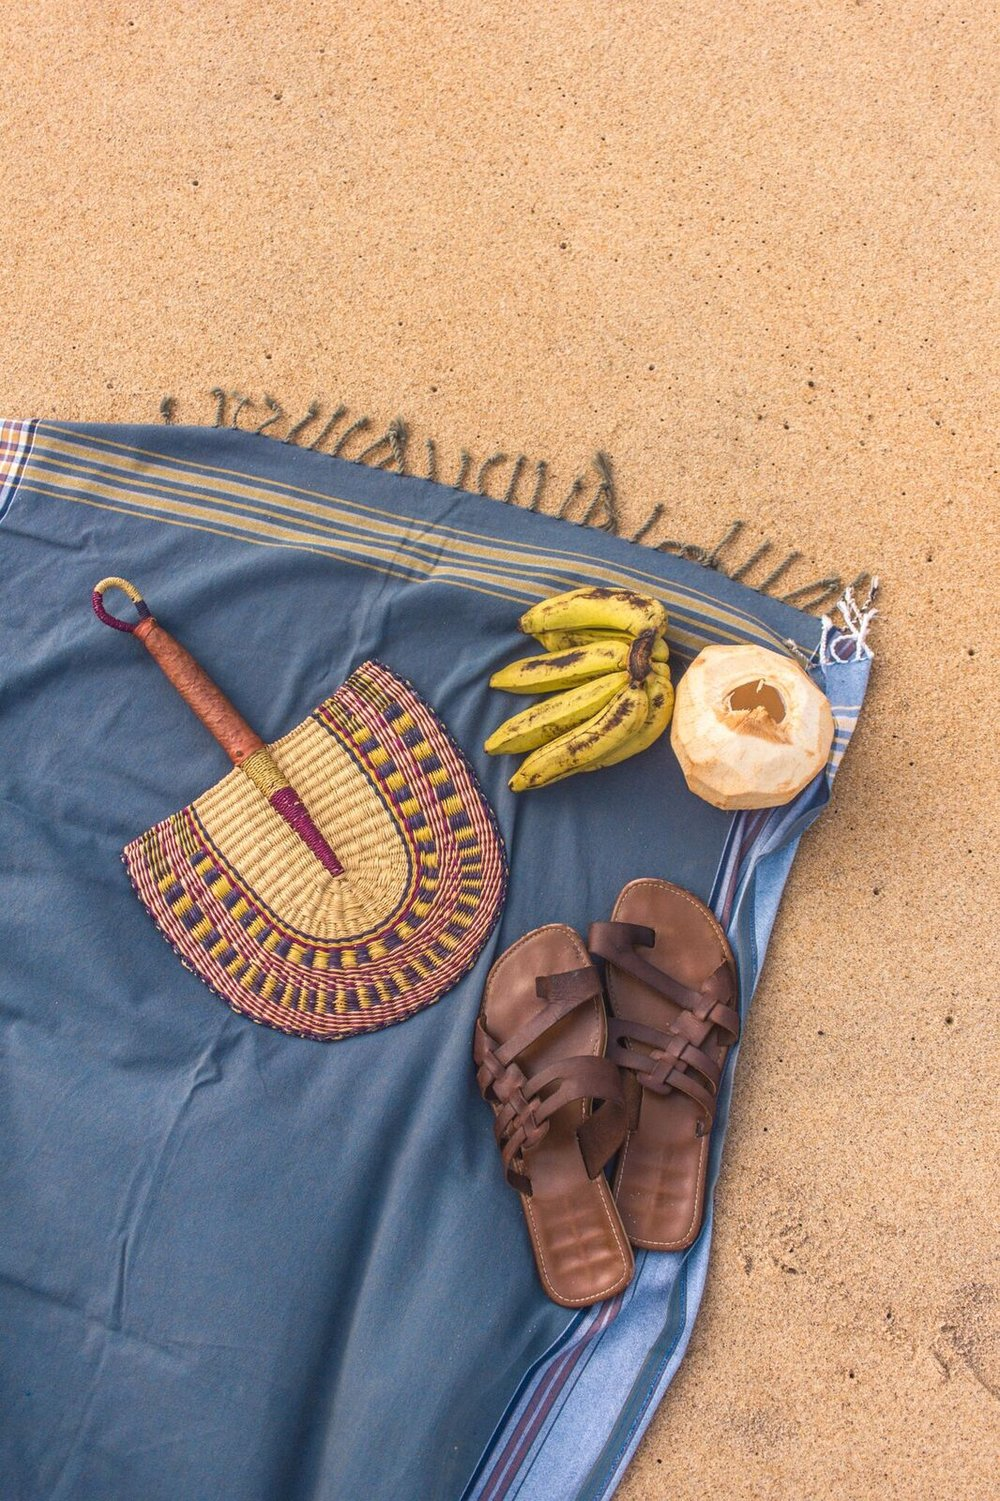 Bananas on beach.jpeg